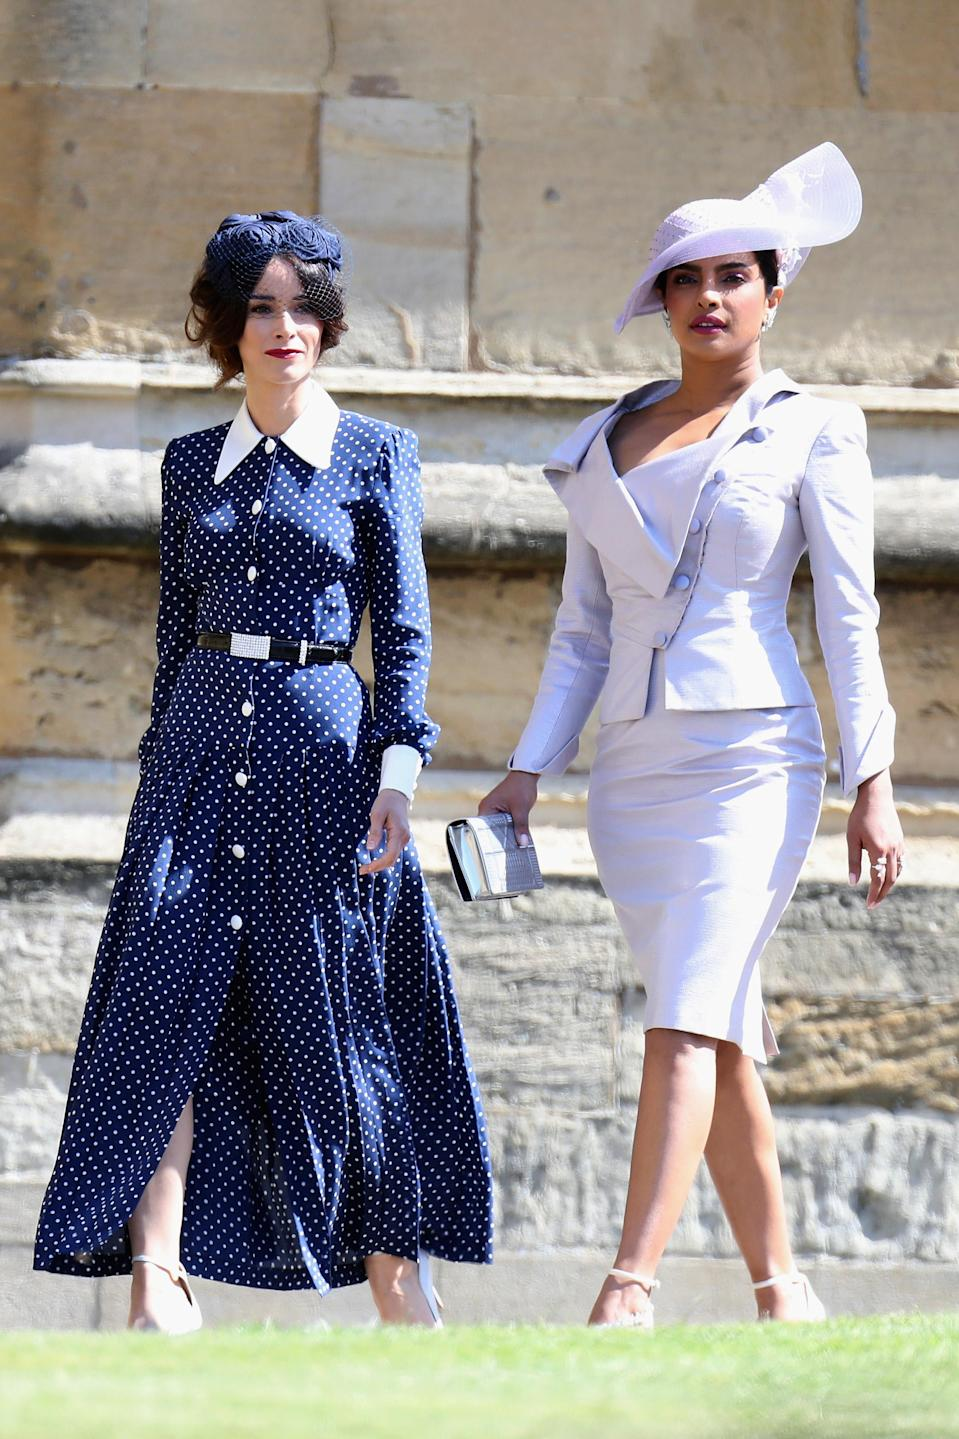 Actress Abigail Spencer, pictured with fellow guest Priyanka Chopra, first wore the Alessandra Rich dress to the royal wedding. (Photo: Chris Jackson/Getty Images)